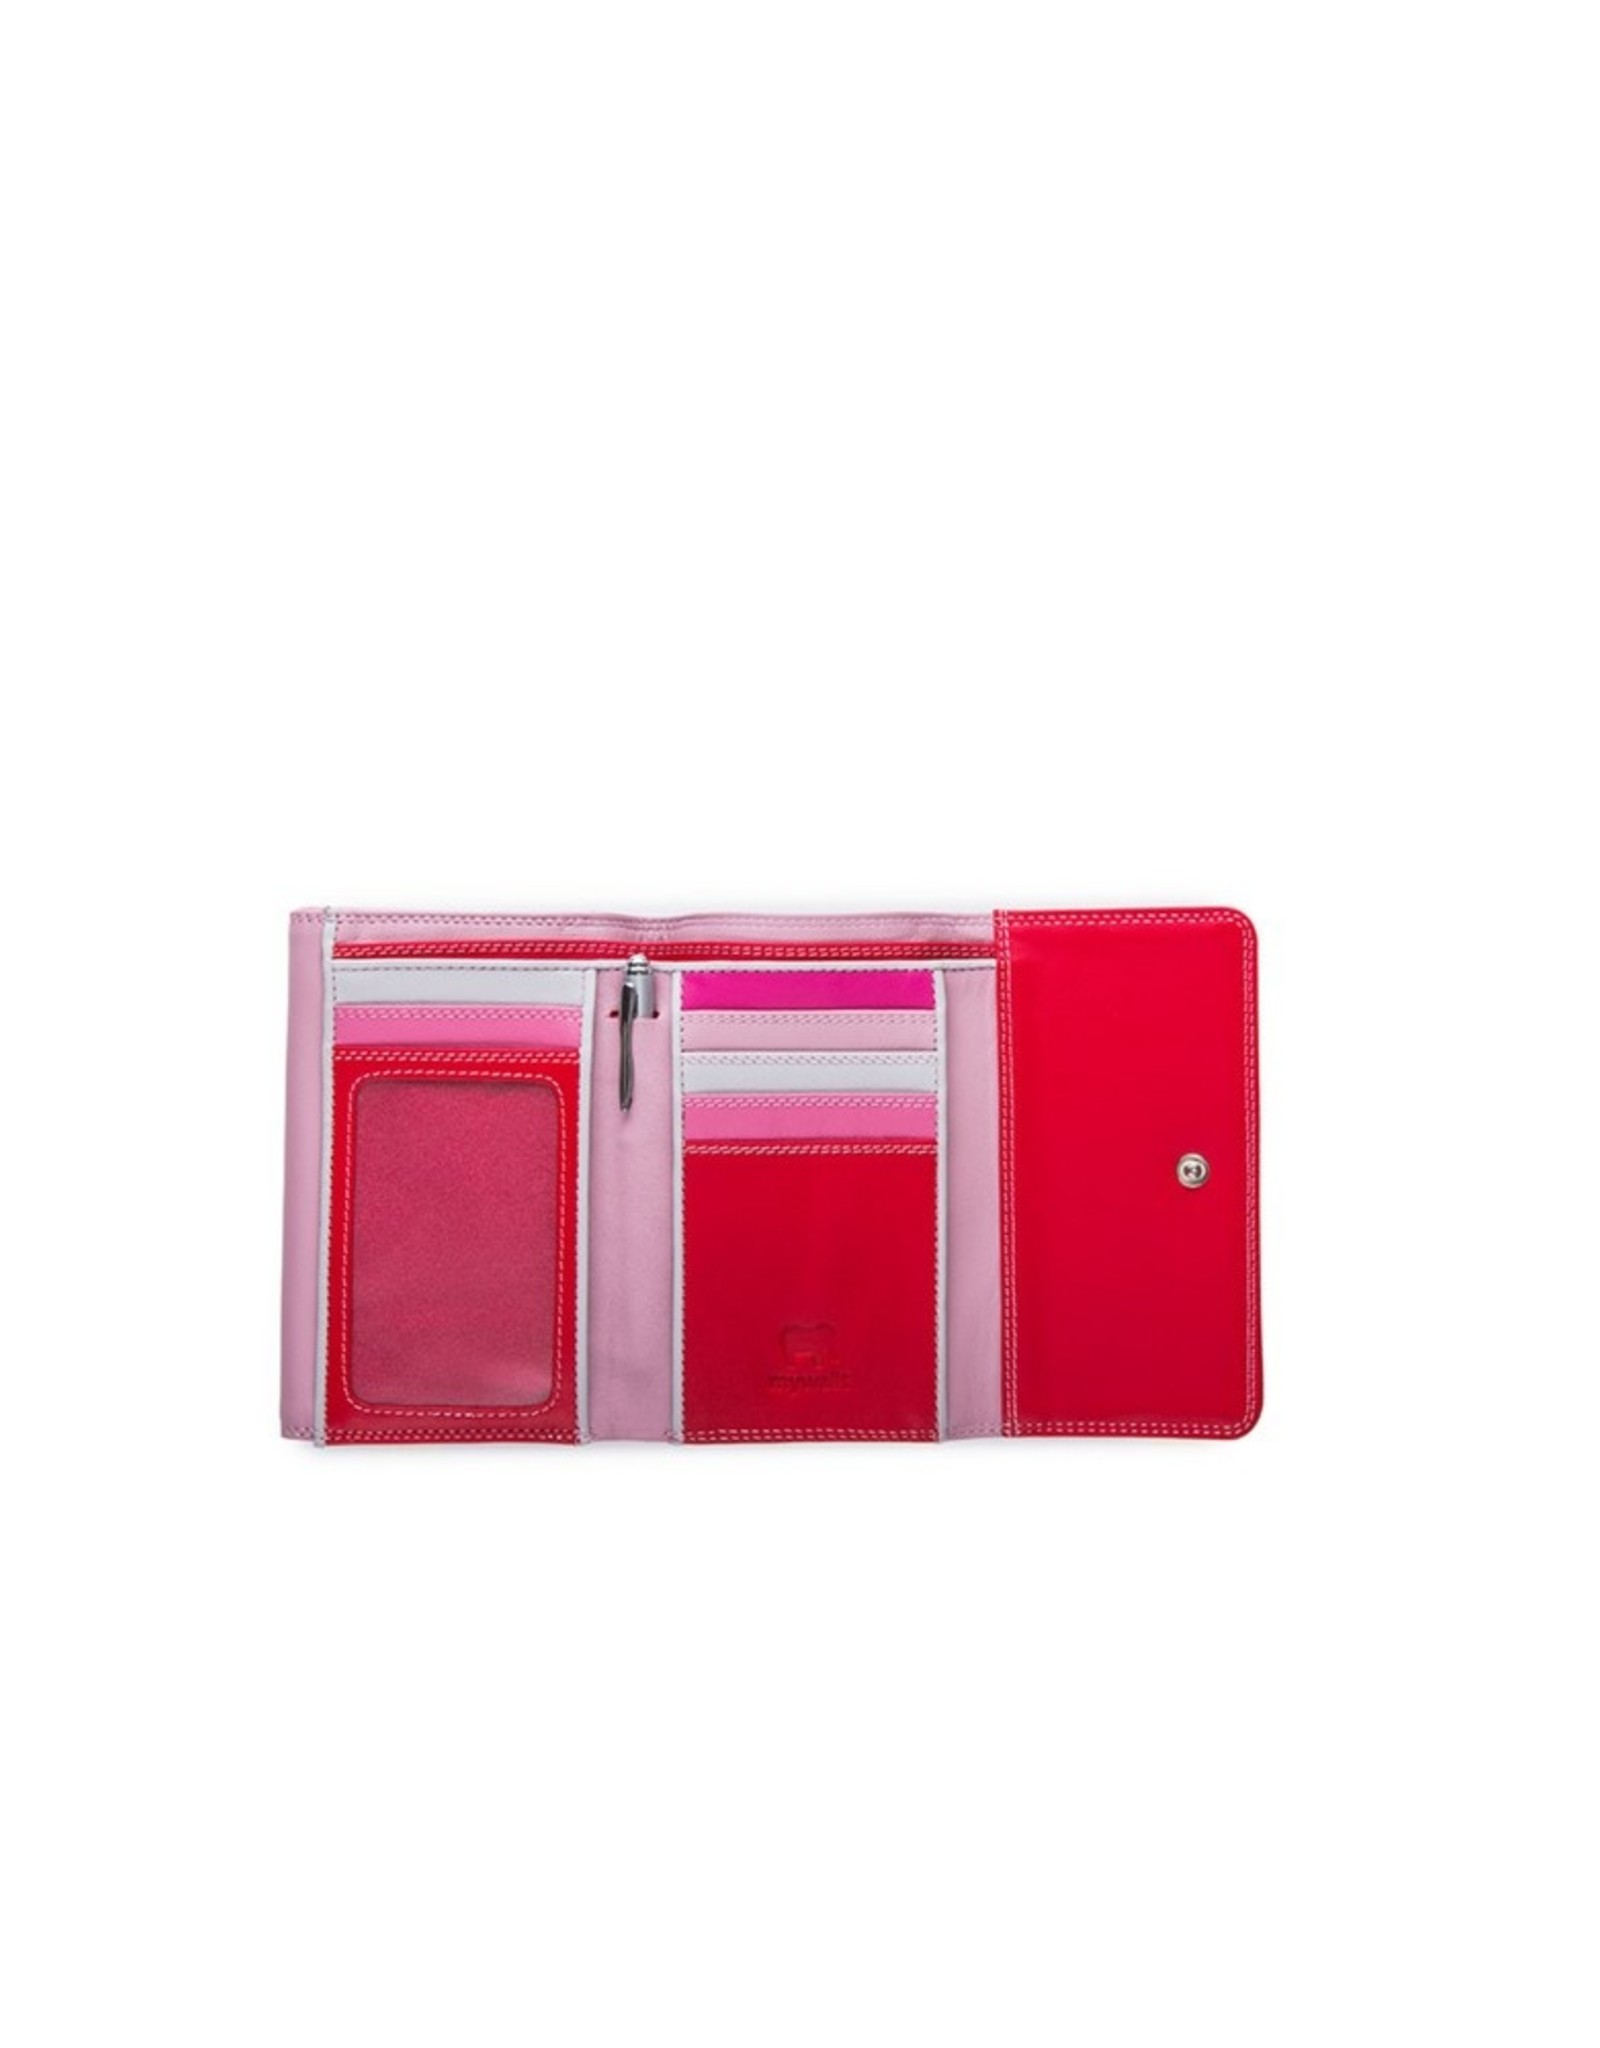 MyWalit Portemonnee Double Flap Ruby